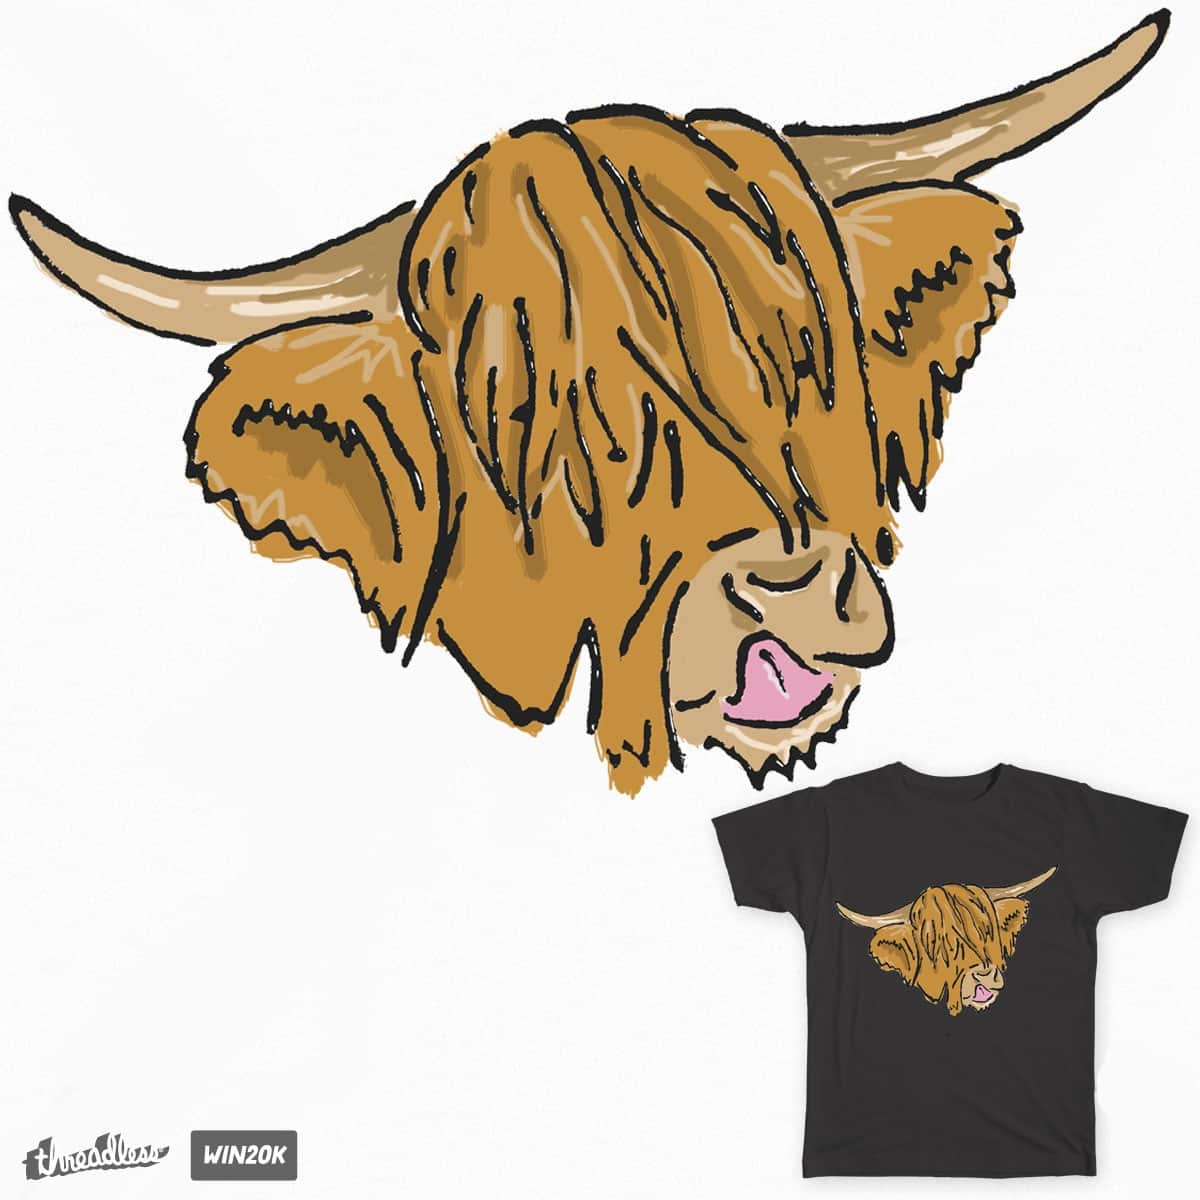 Heilan' Coo by sam1107 on Threadless